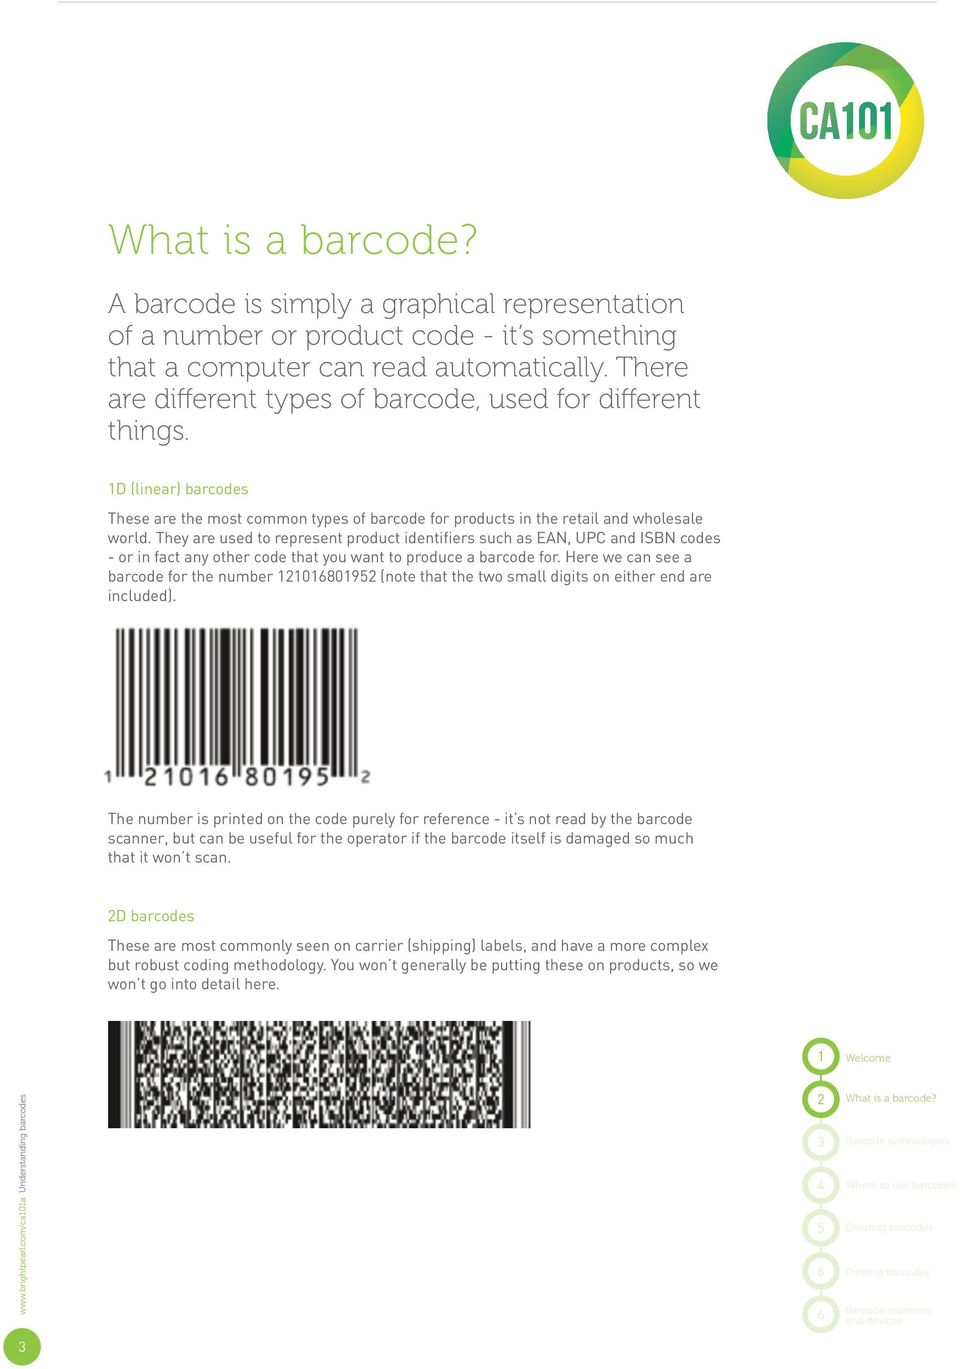 They are used to represent product identifiers such as EAN, UPC and ISBN codes - or in fact any other code that you want to produce a barcode for.